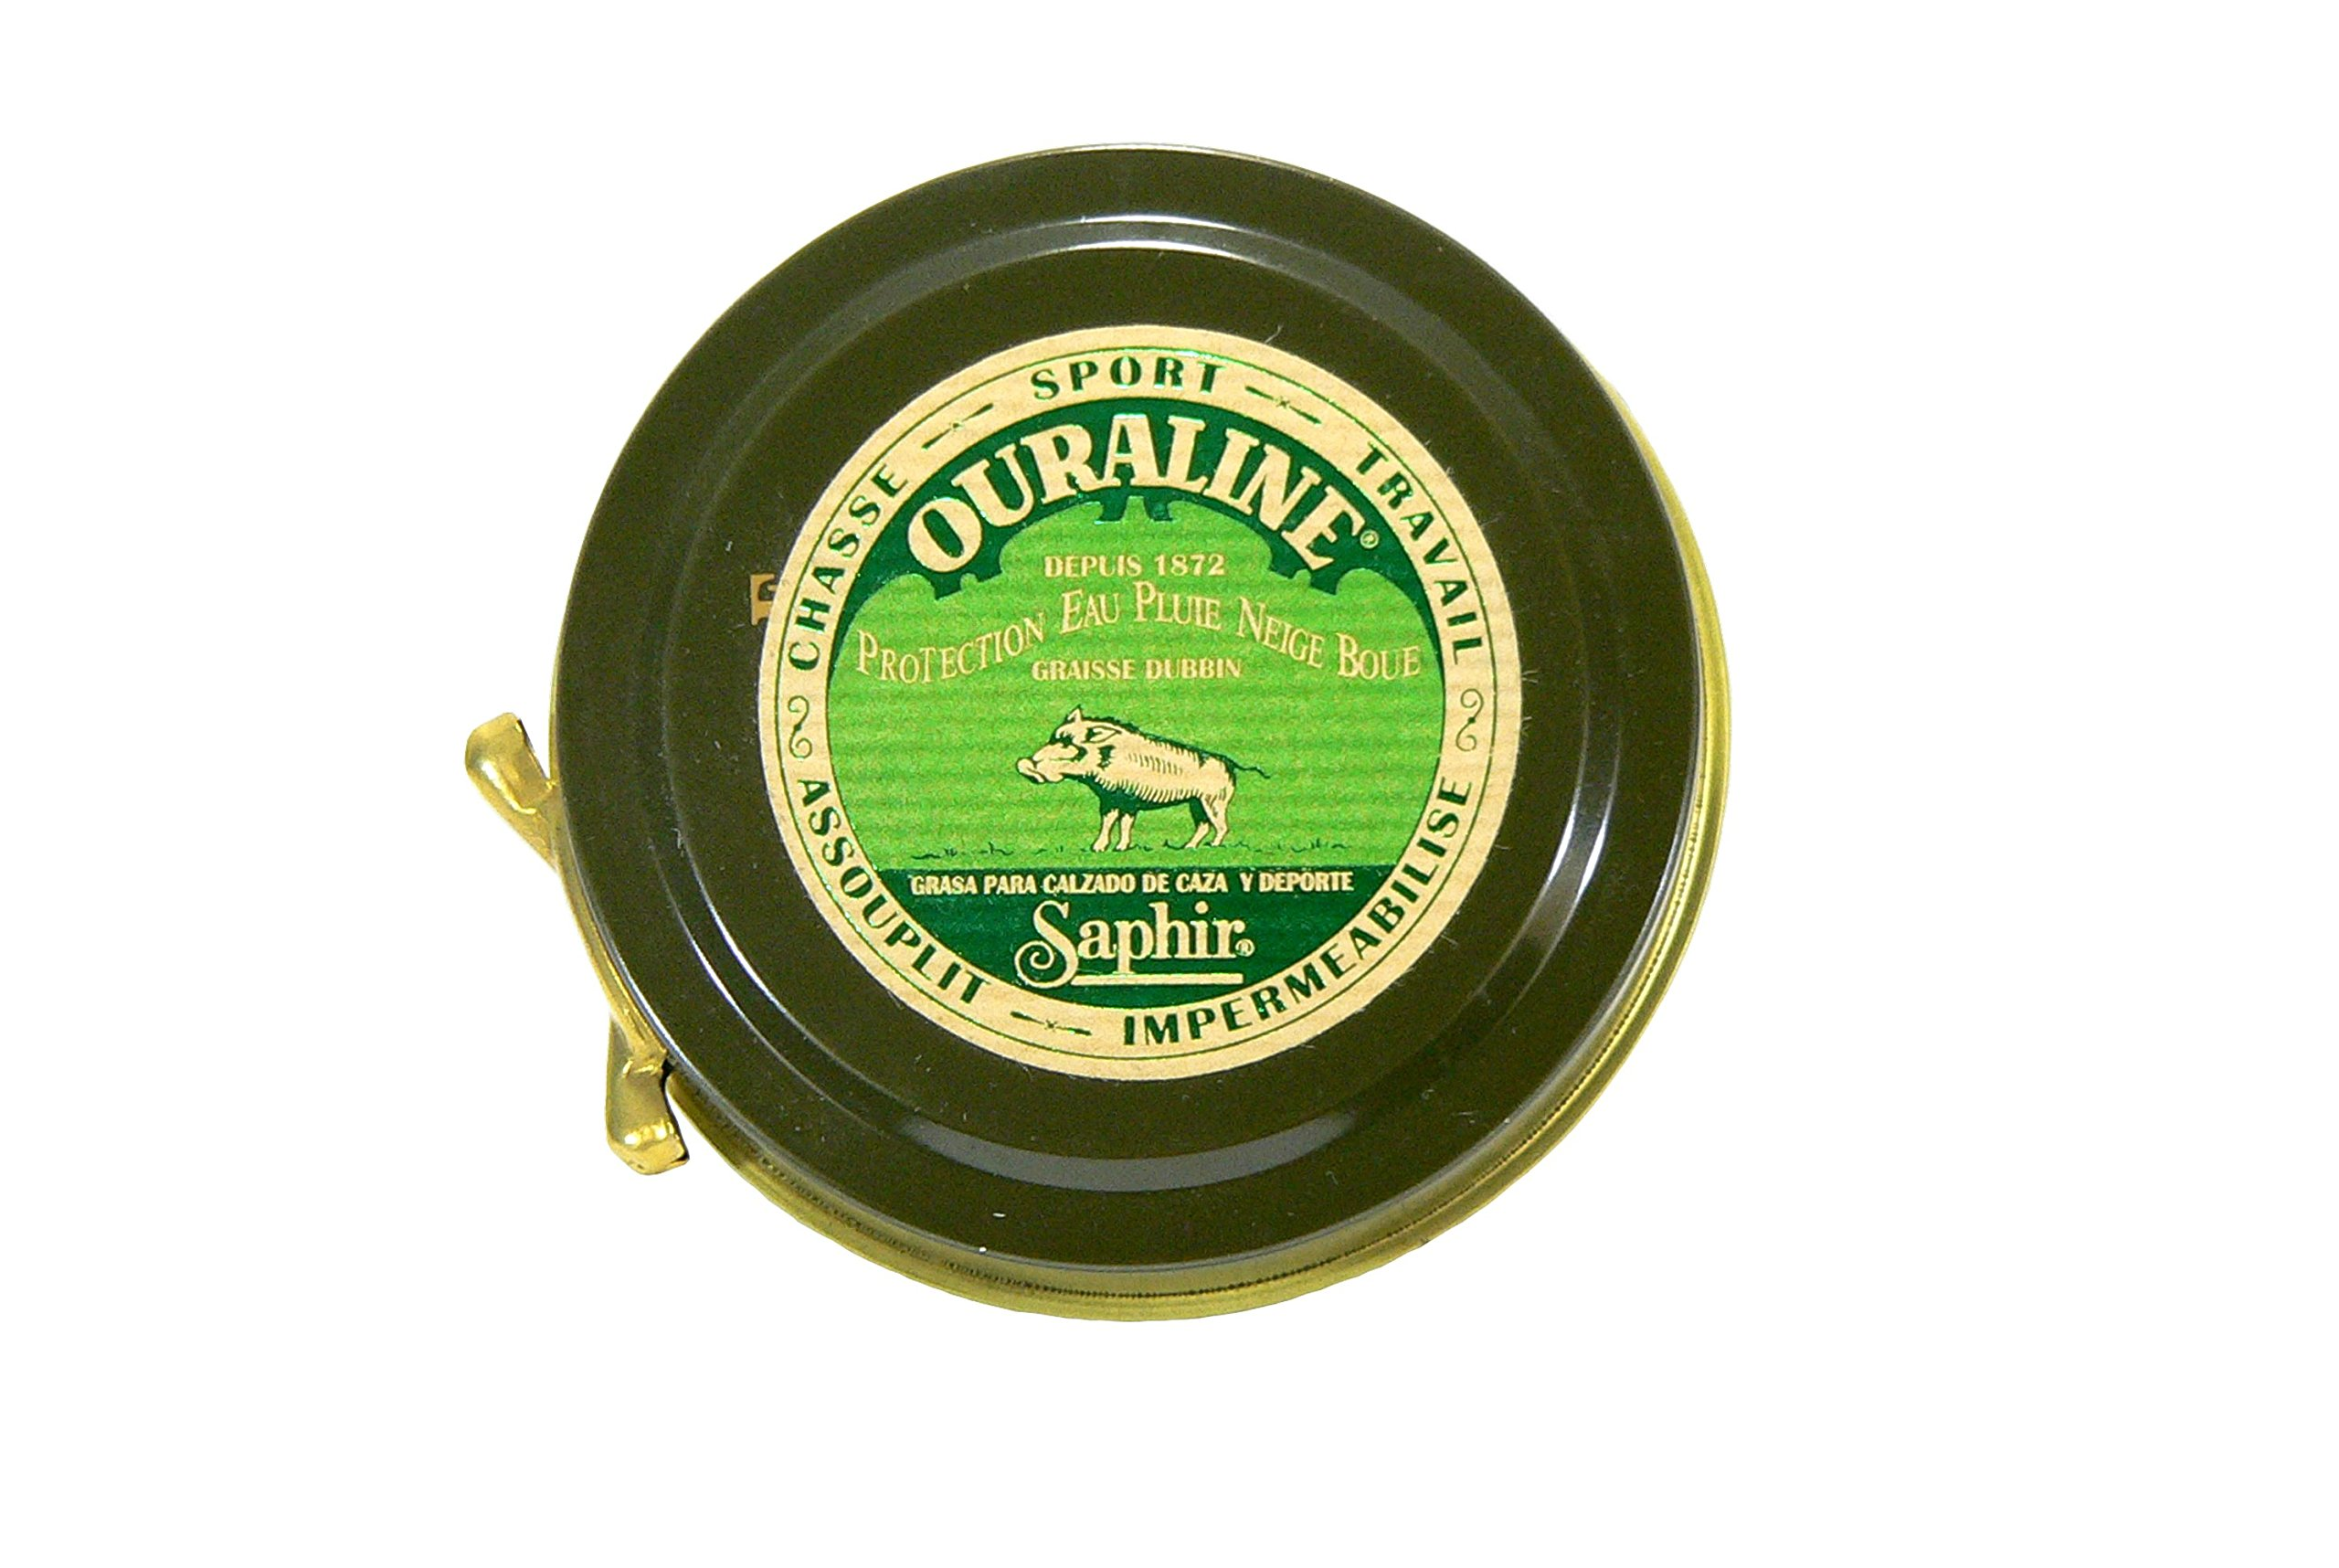 Dubbin Ouraline by Saphir - Conditioner & Weather Protection for all Outdoor Leather Equipment by Saphir